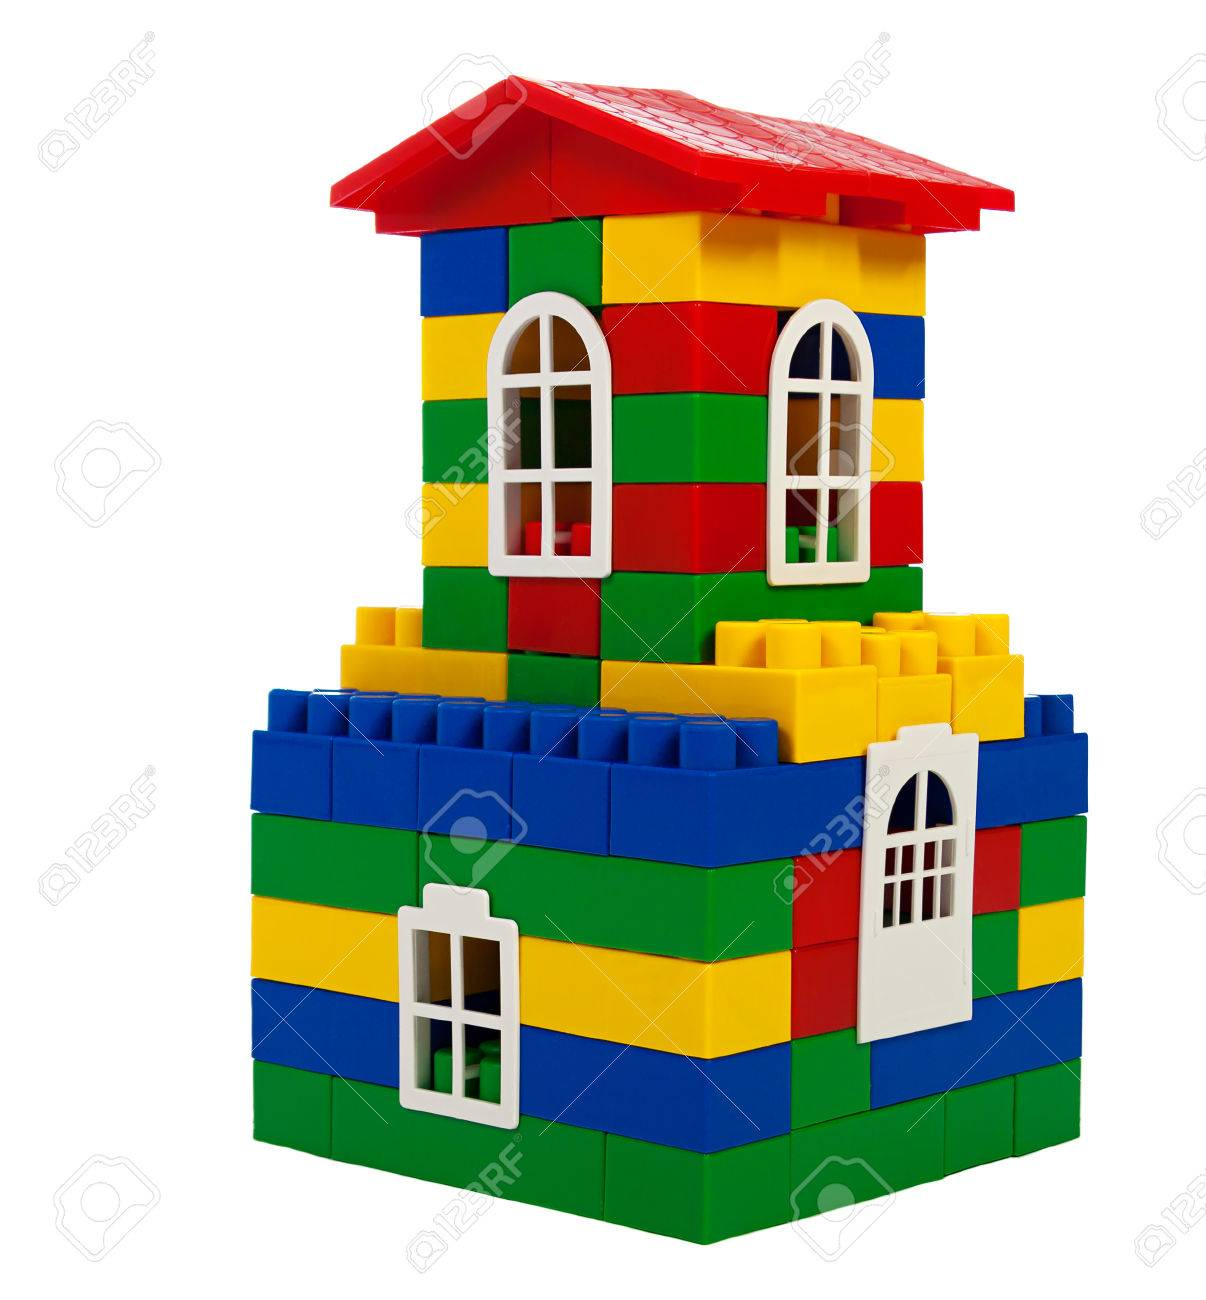 toy colorful house isolated on a white background - 22507789